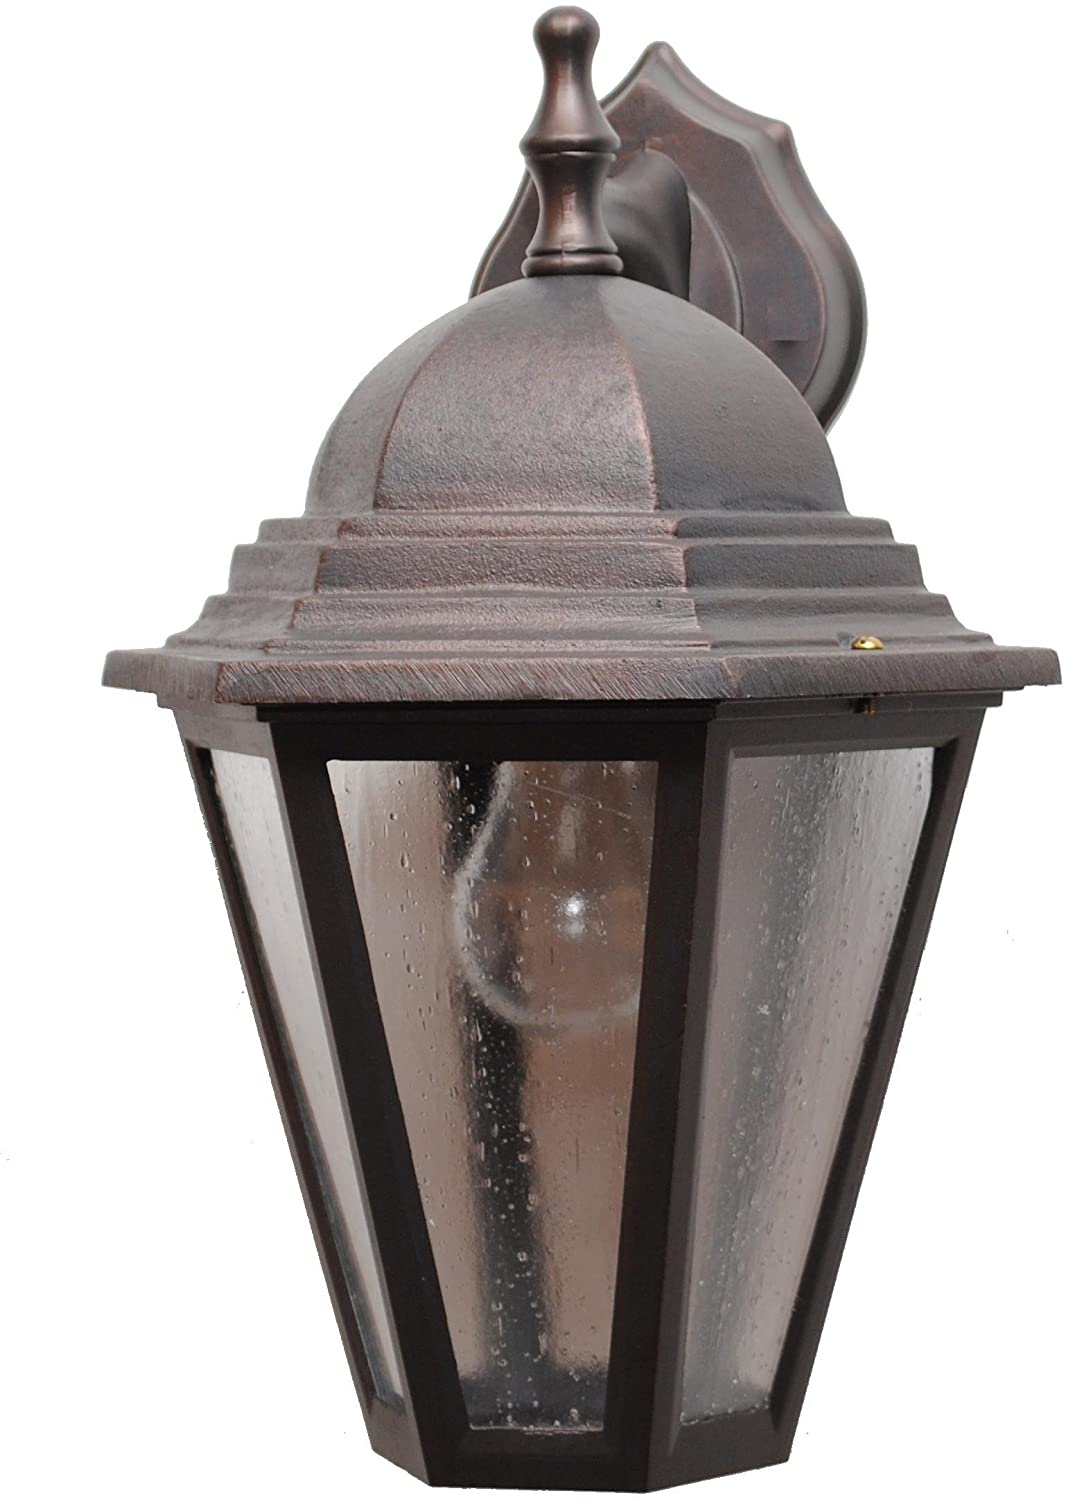 Melissa Lighting K215006 Traditional Outdoor Wall Mount from Kiss Lighting Collection in Bronze/Darkfinish